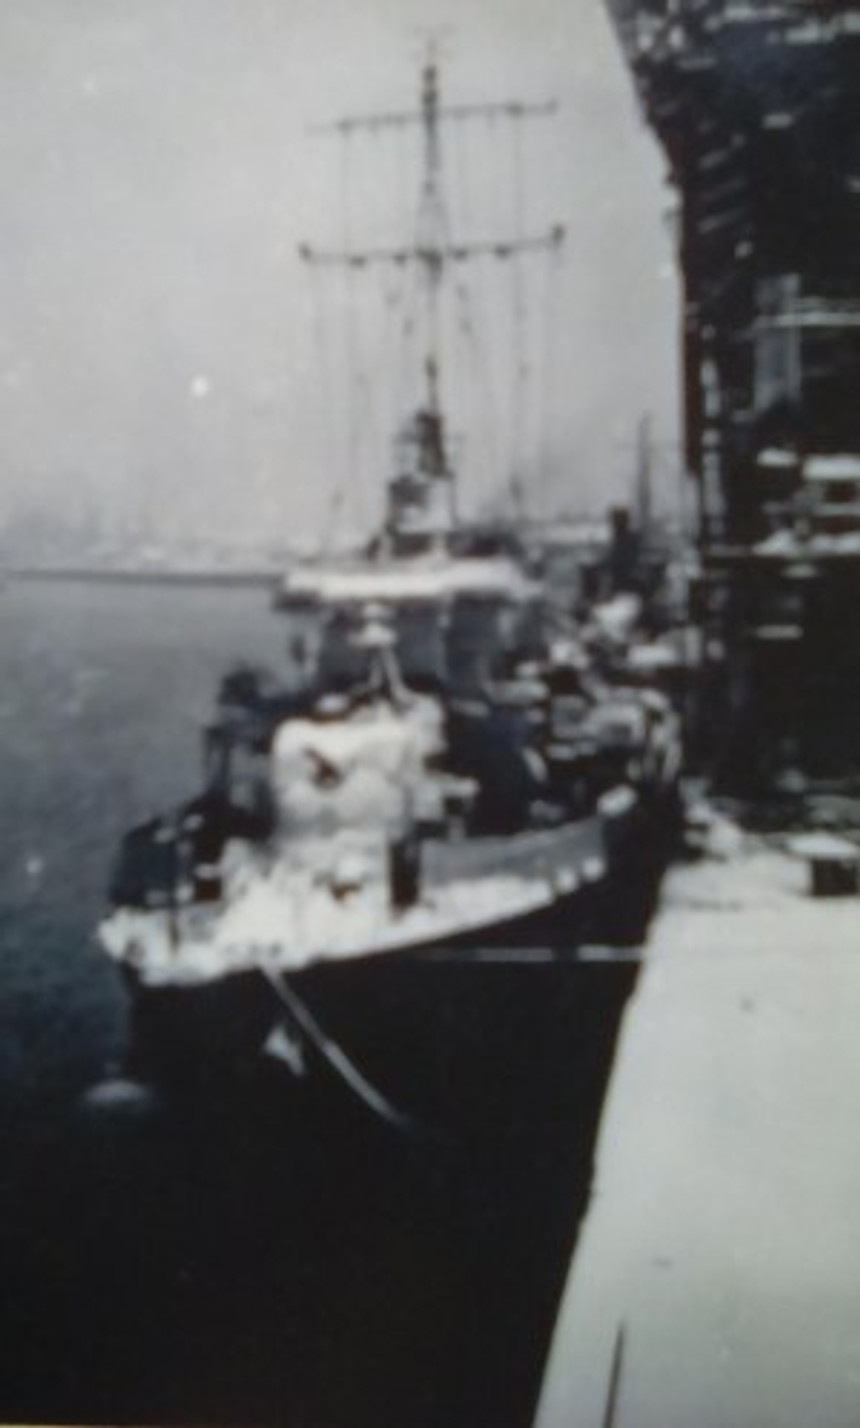 A photo taken of one of the naval shops I was on.